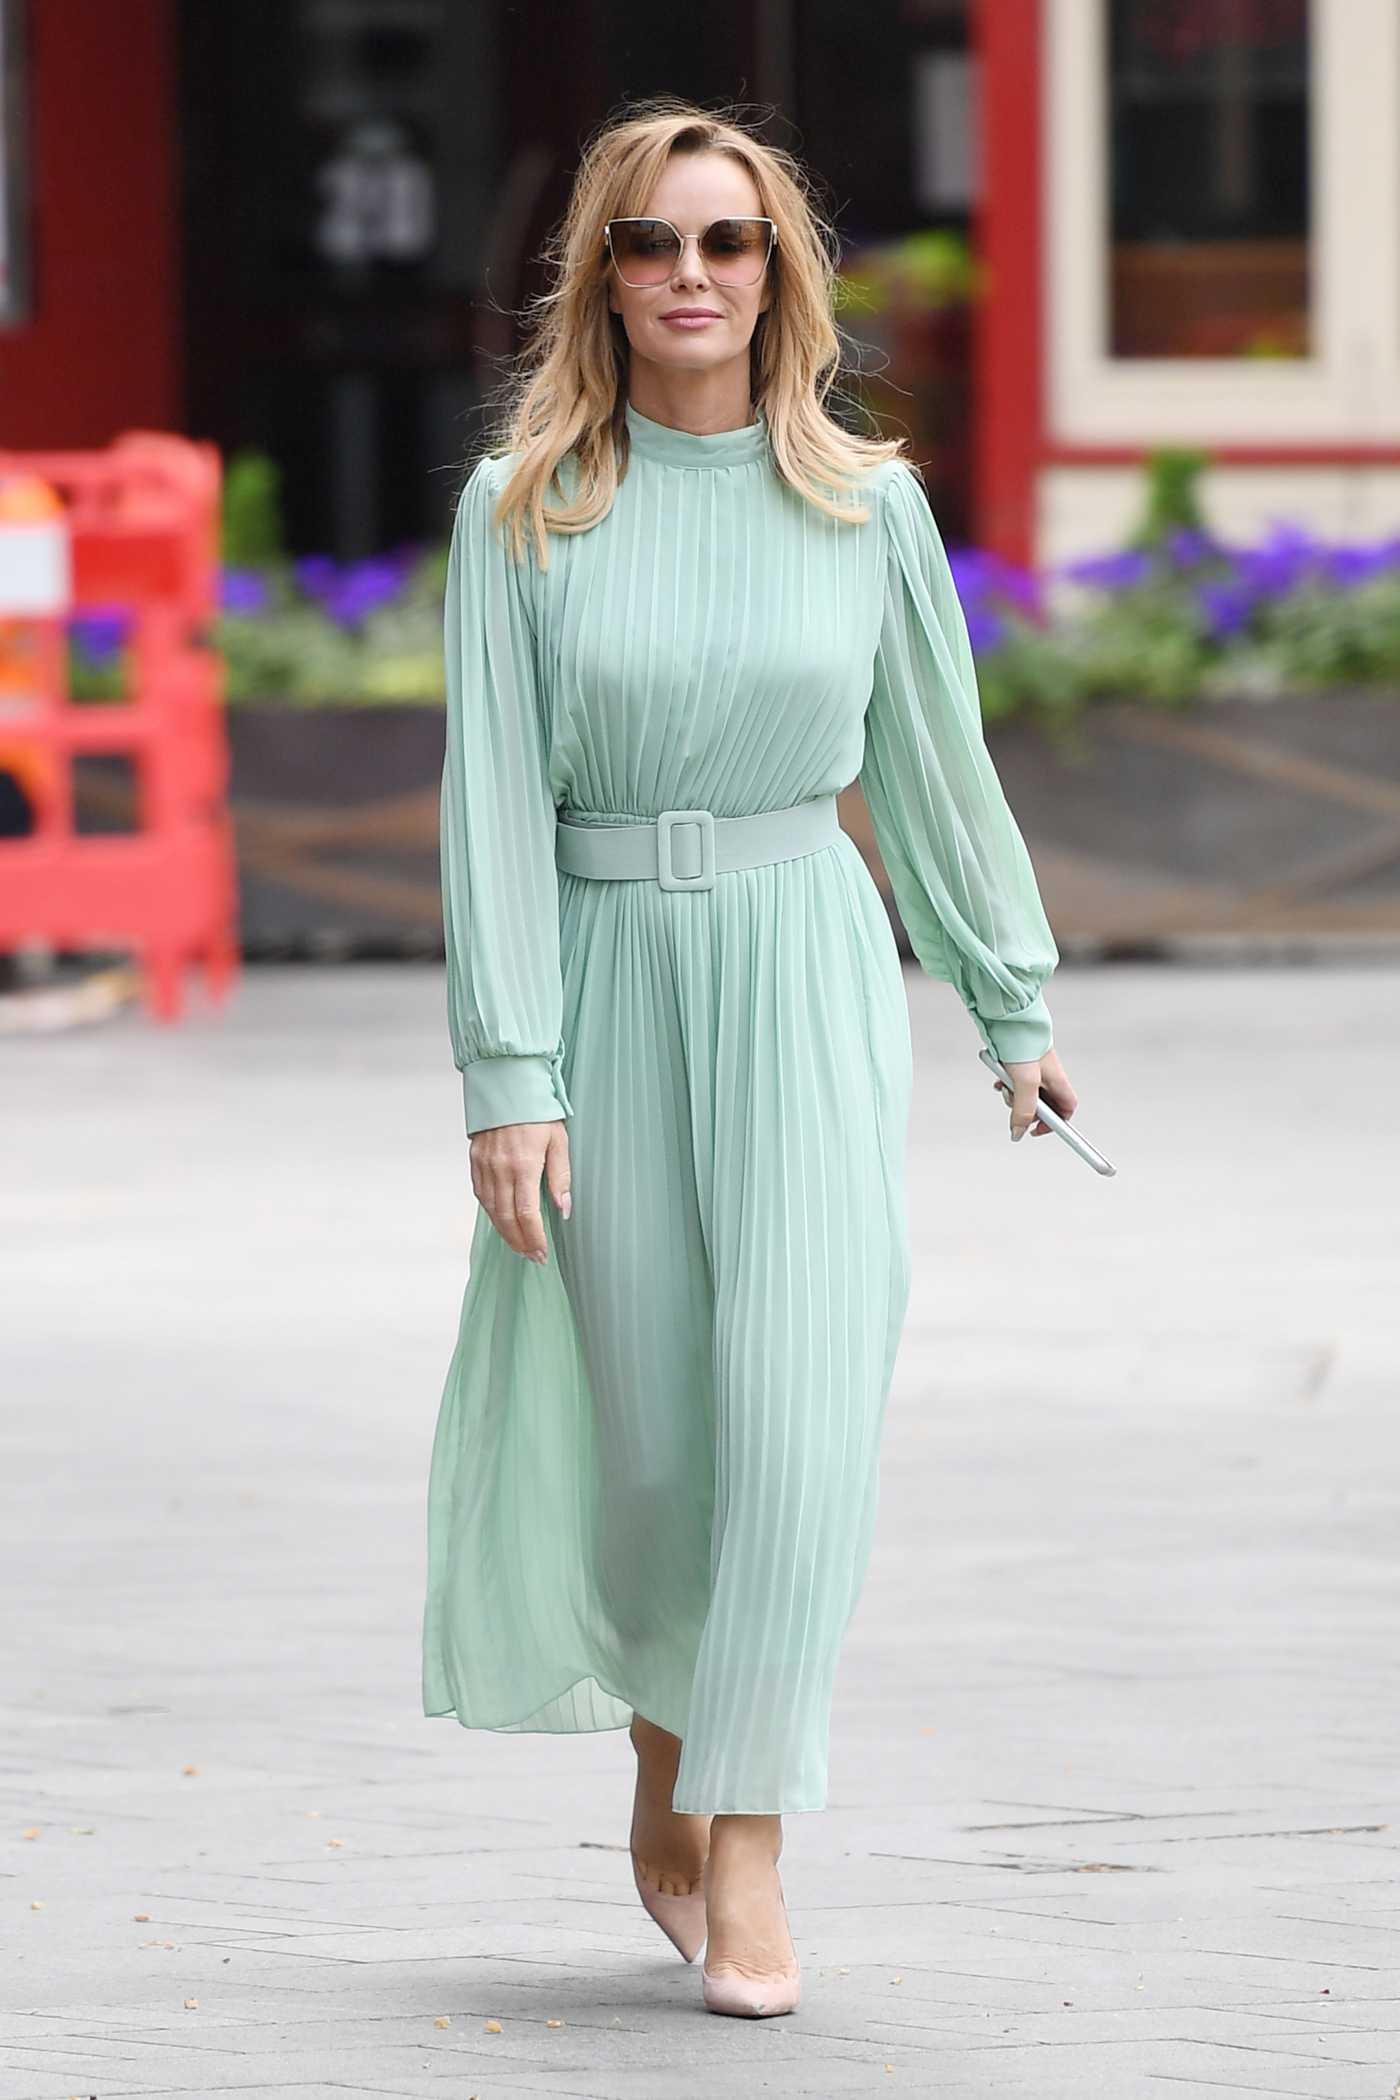 Amanda Holden in a Green Dress Arrives at Heart Breakfast at the Global House in London 04/17/2020